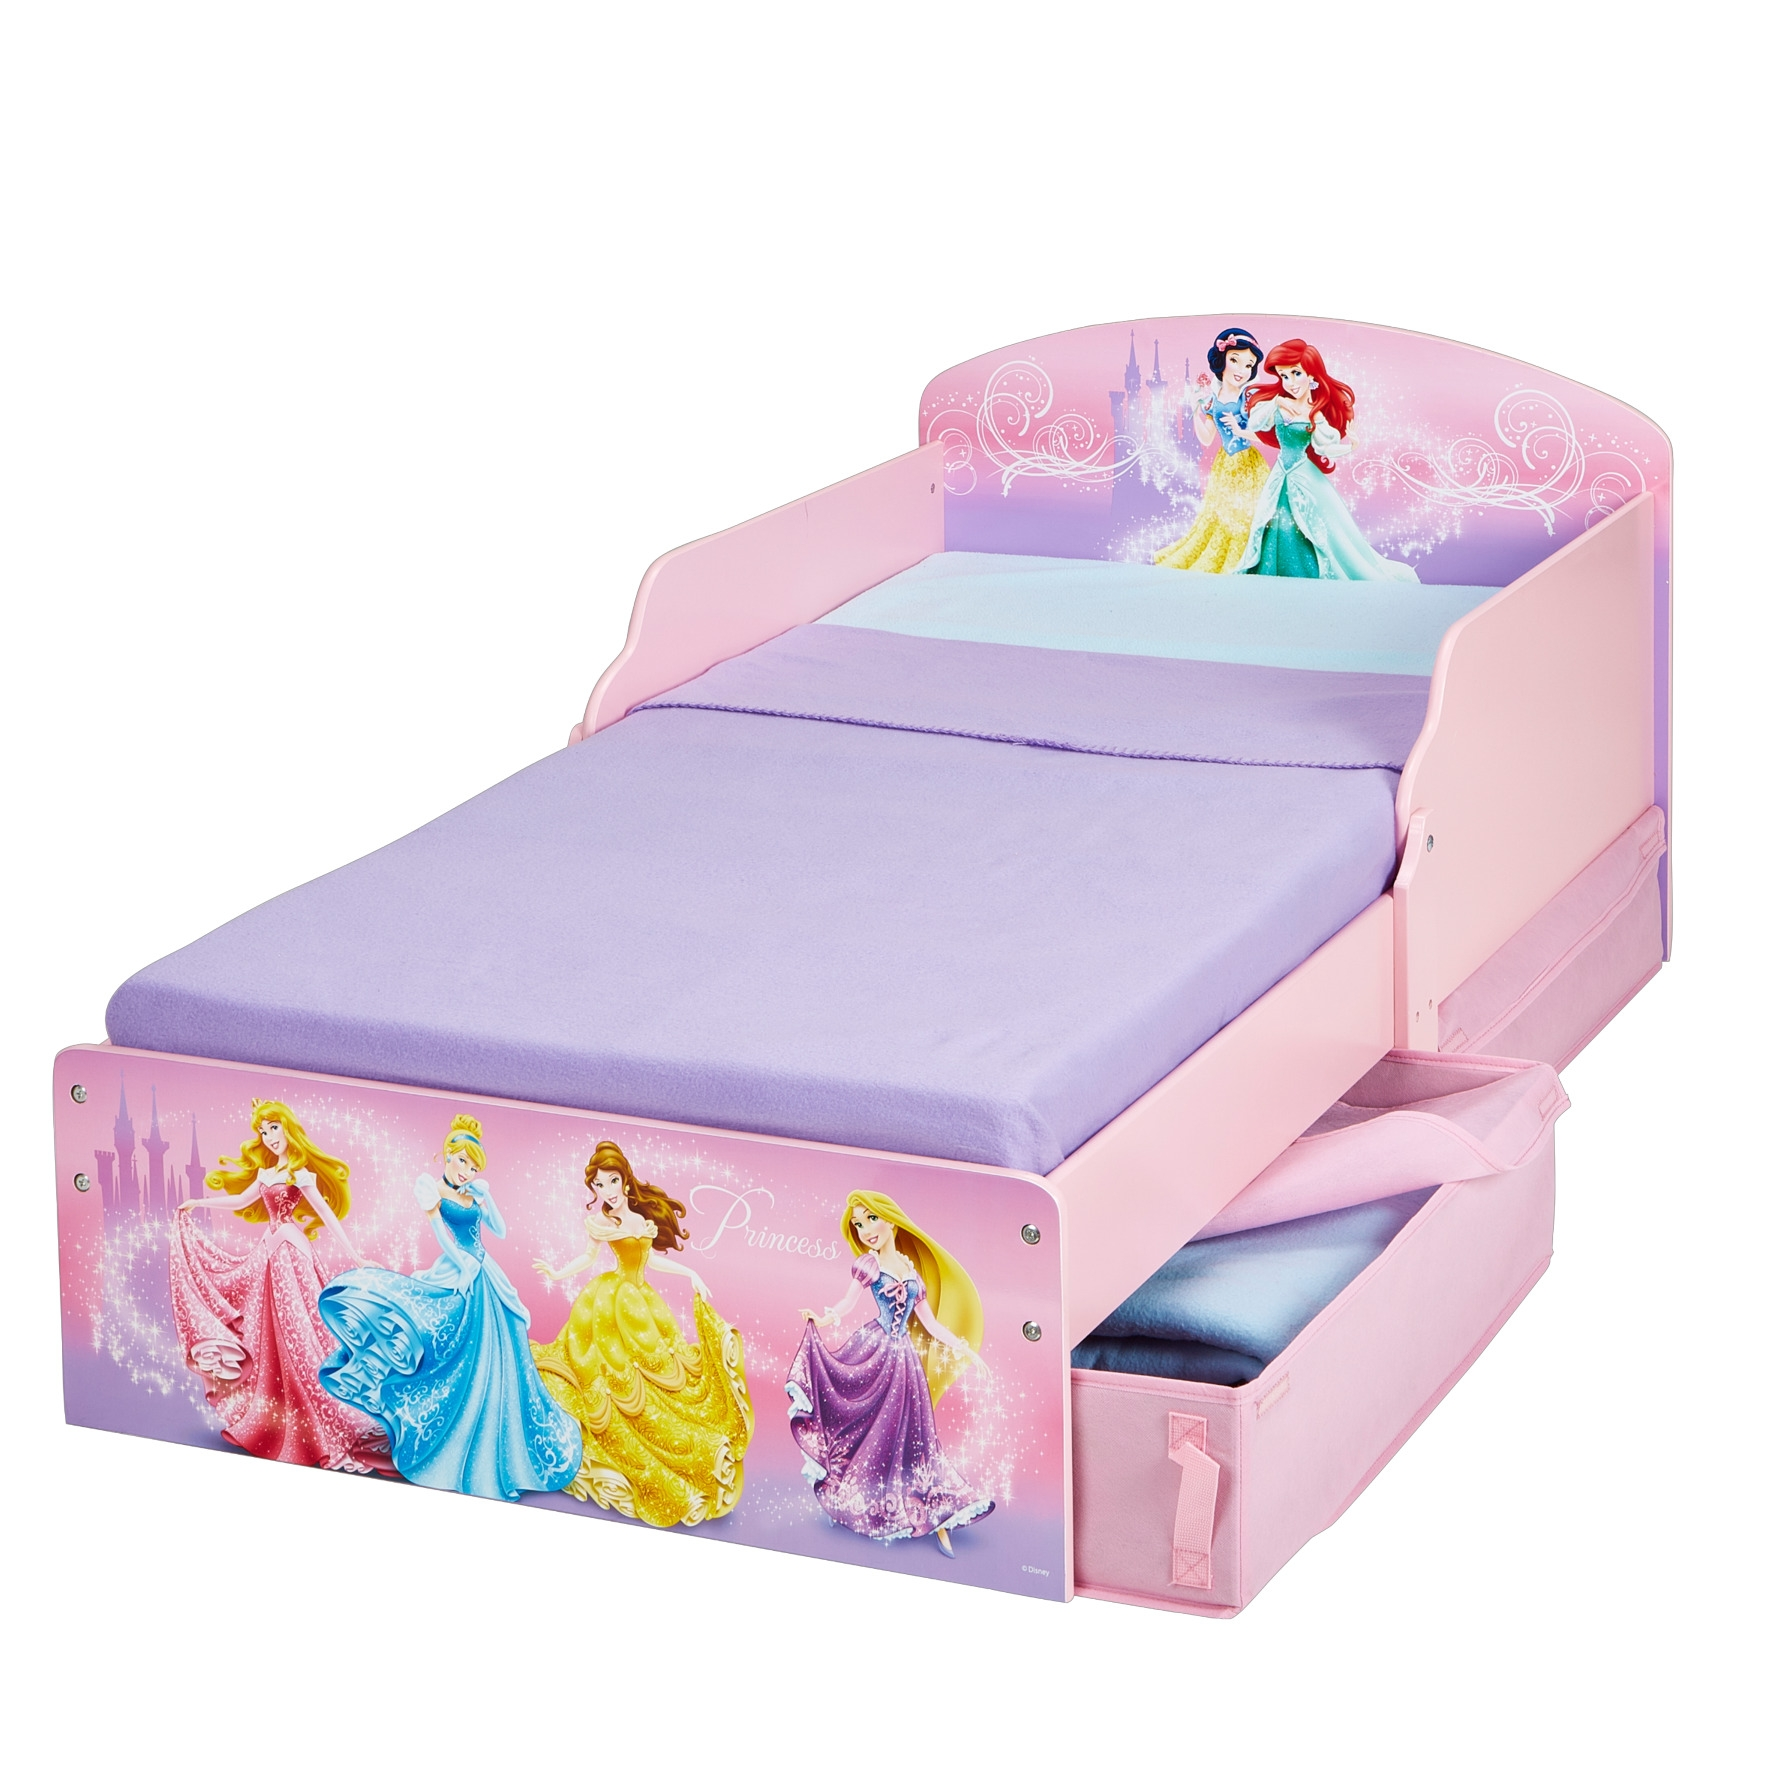 lit avec rangement disney princesses. Black Bedroom Furniture Sets. Home Design Ideas